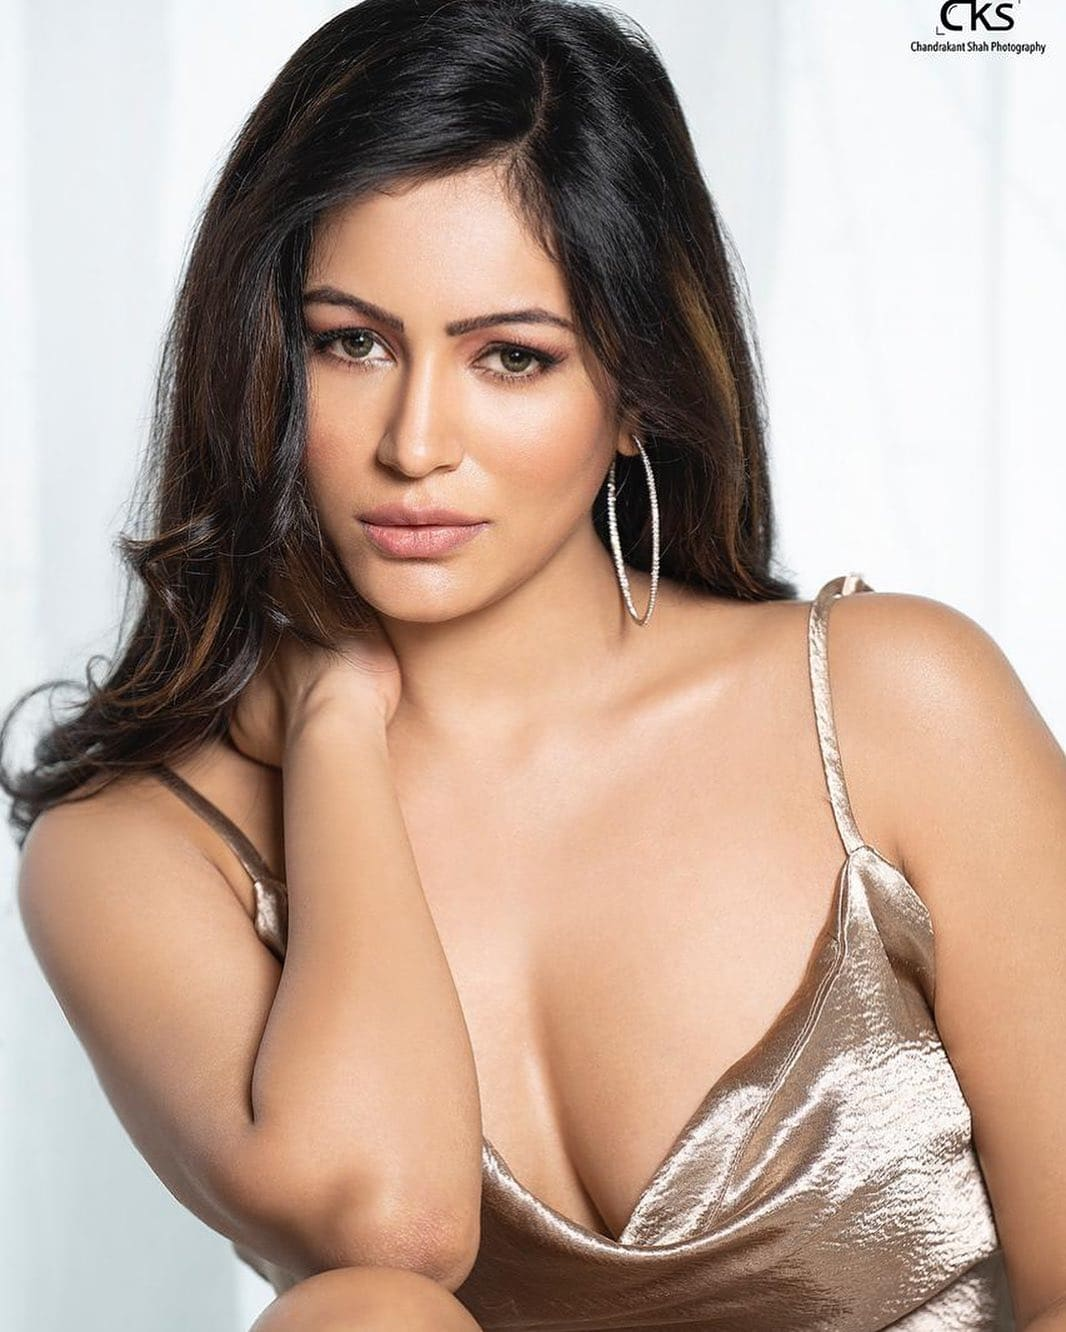 Pooja Bisht Indian Model, Actress